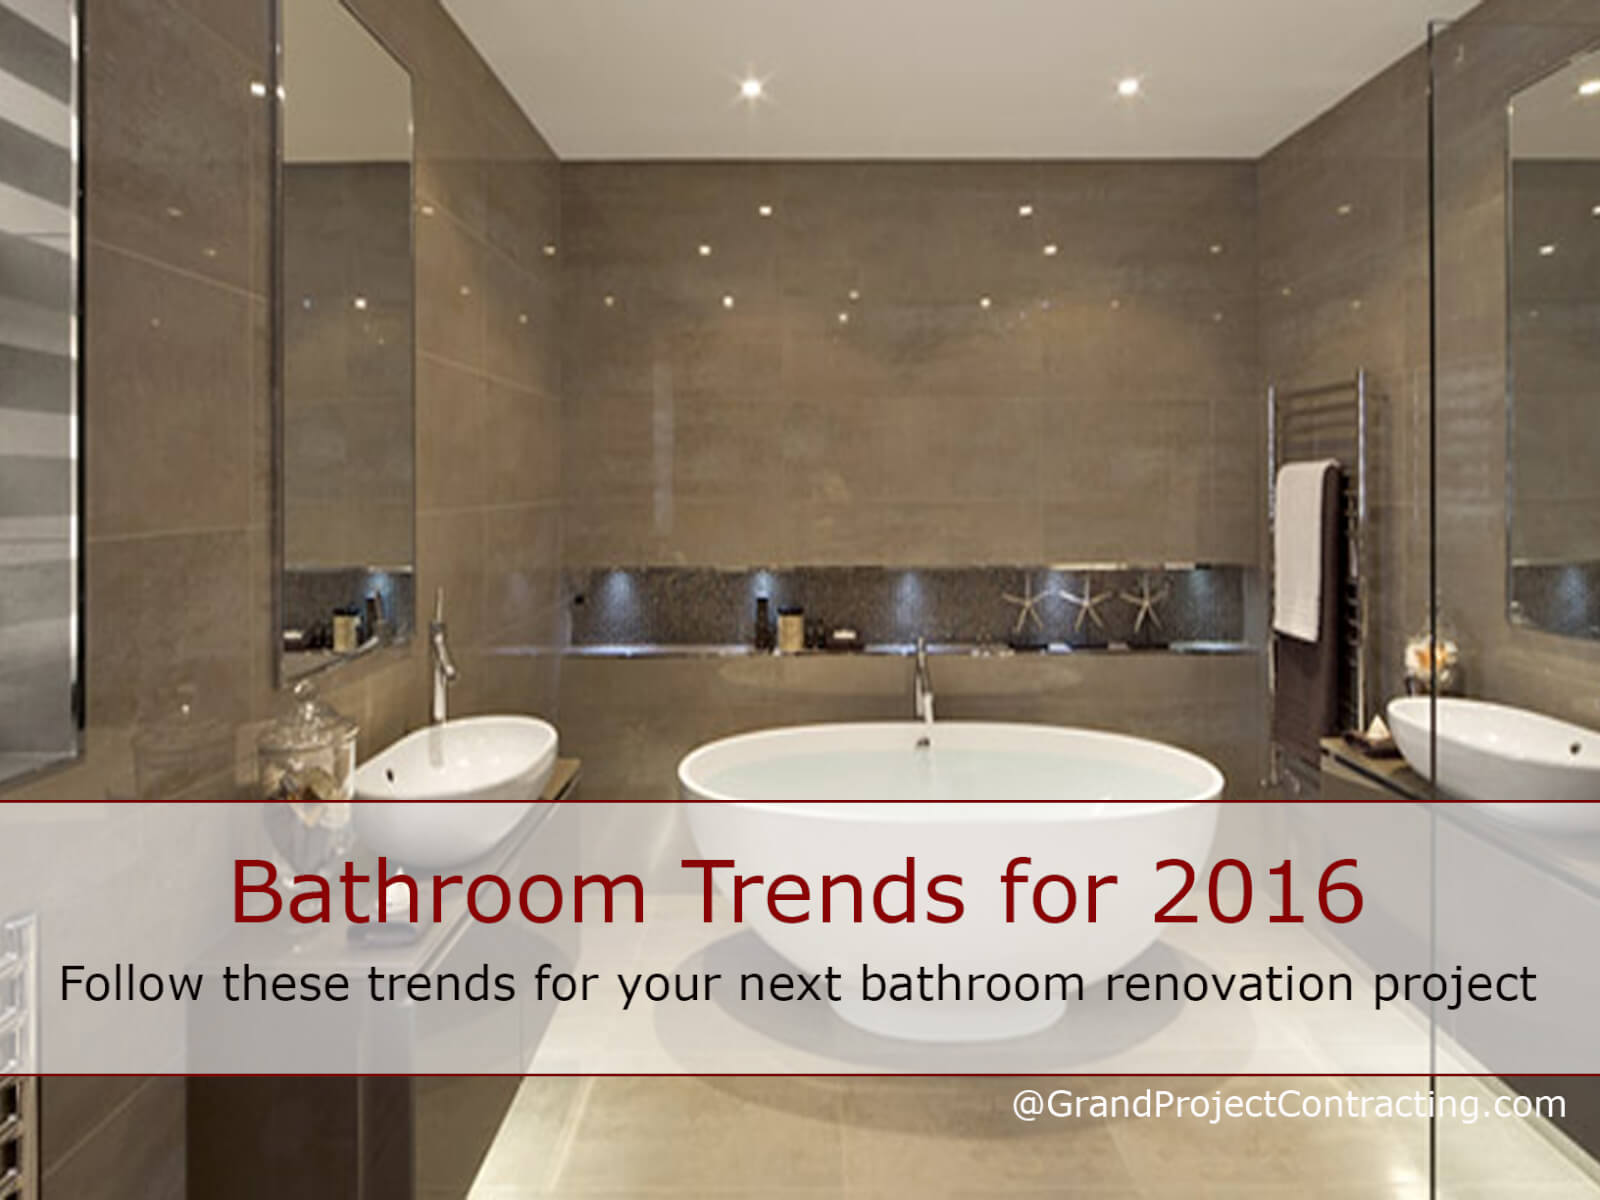 Bathroom renovation cost 2 - Bathroom Trends For 2016 Bathroom Renovation Contractor